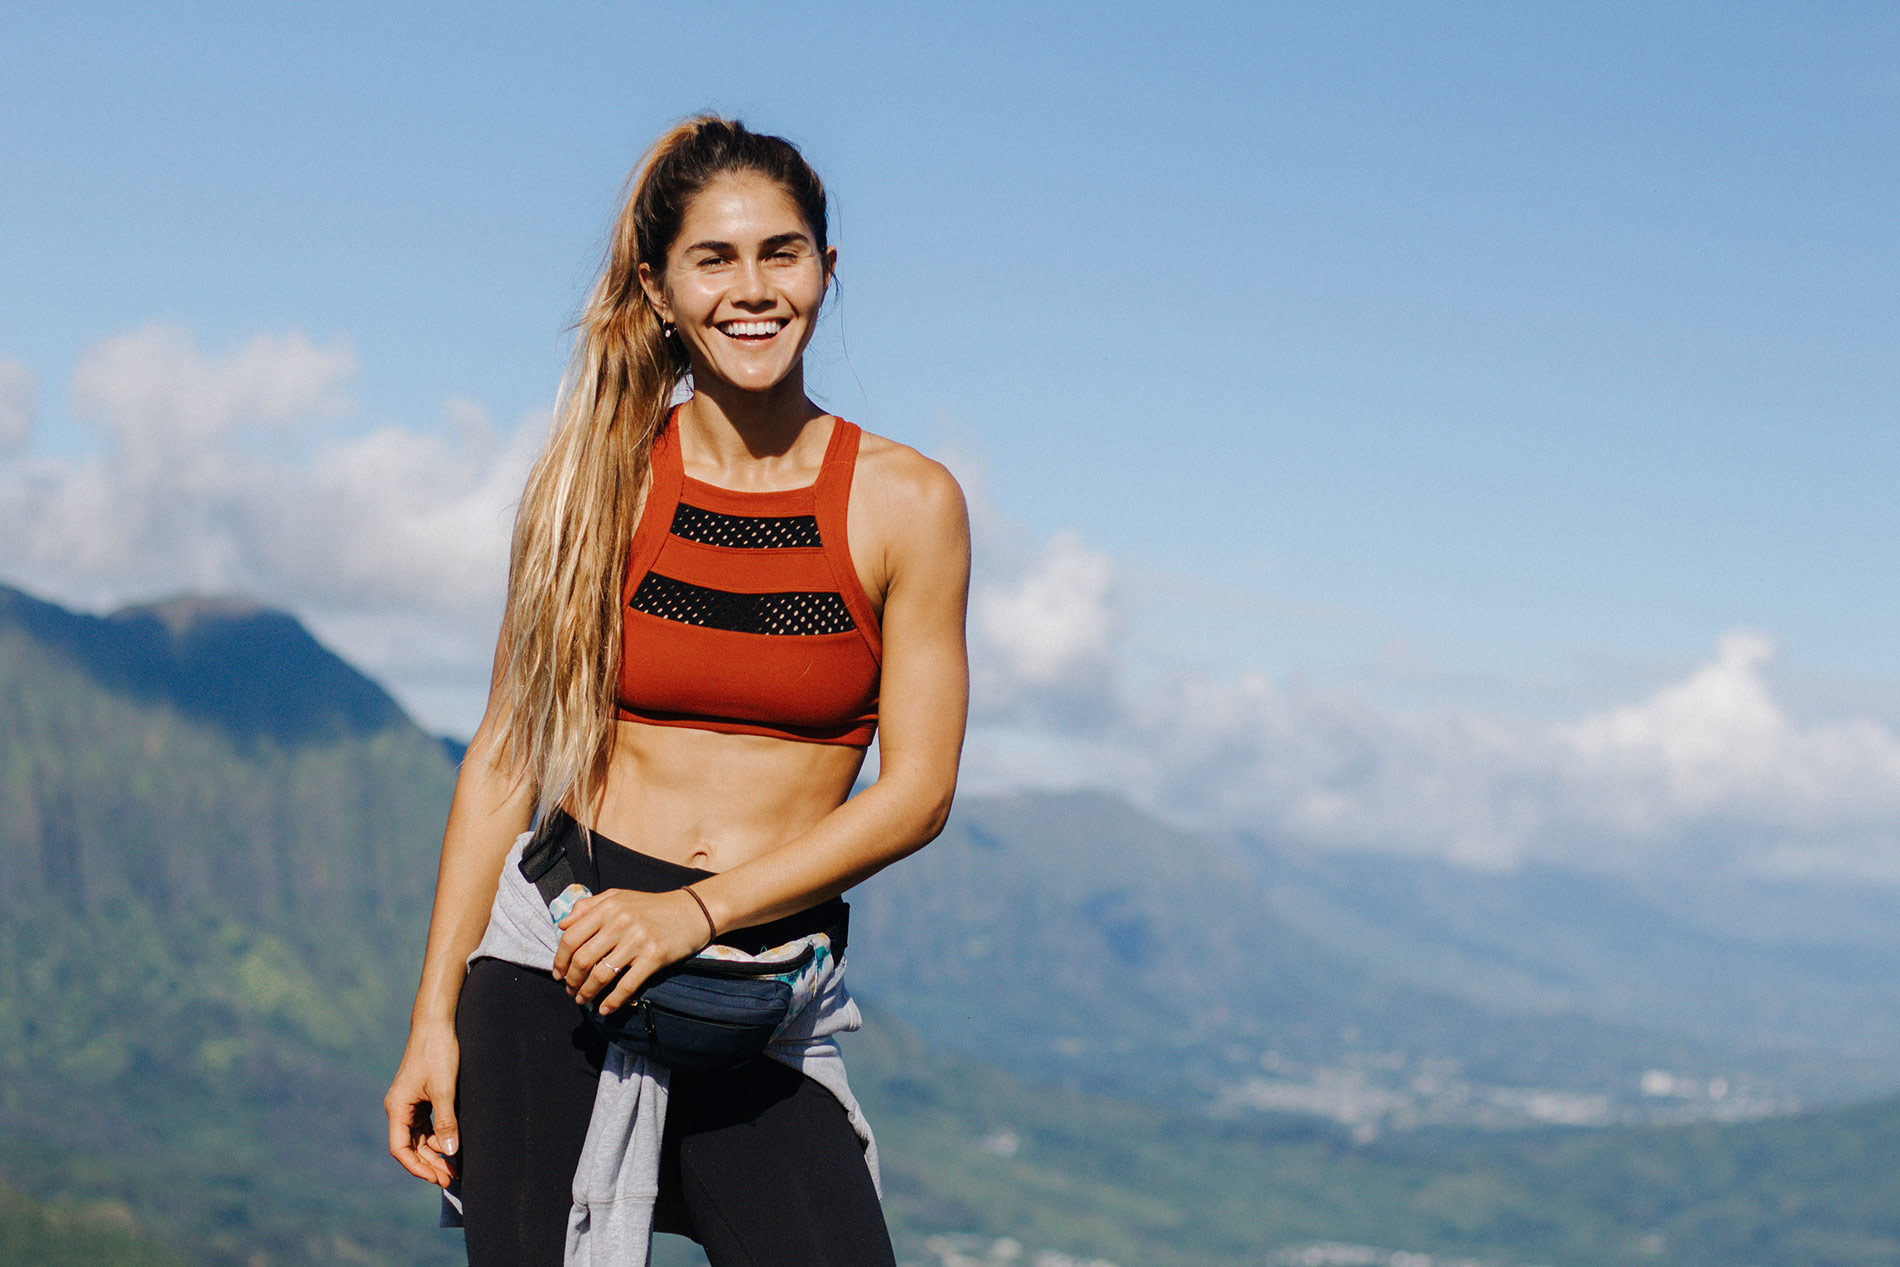 CHASING HAPPINESS - FITNESS TRAINER ROCAMOON